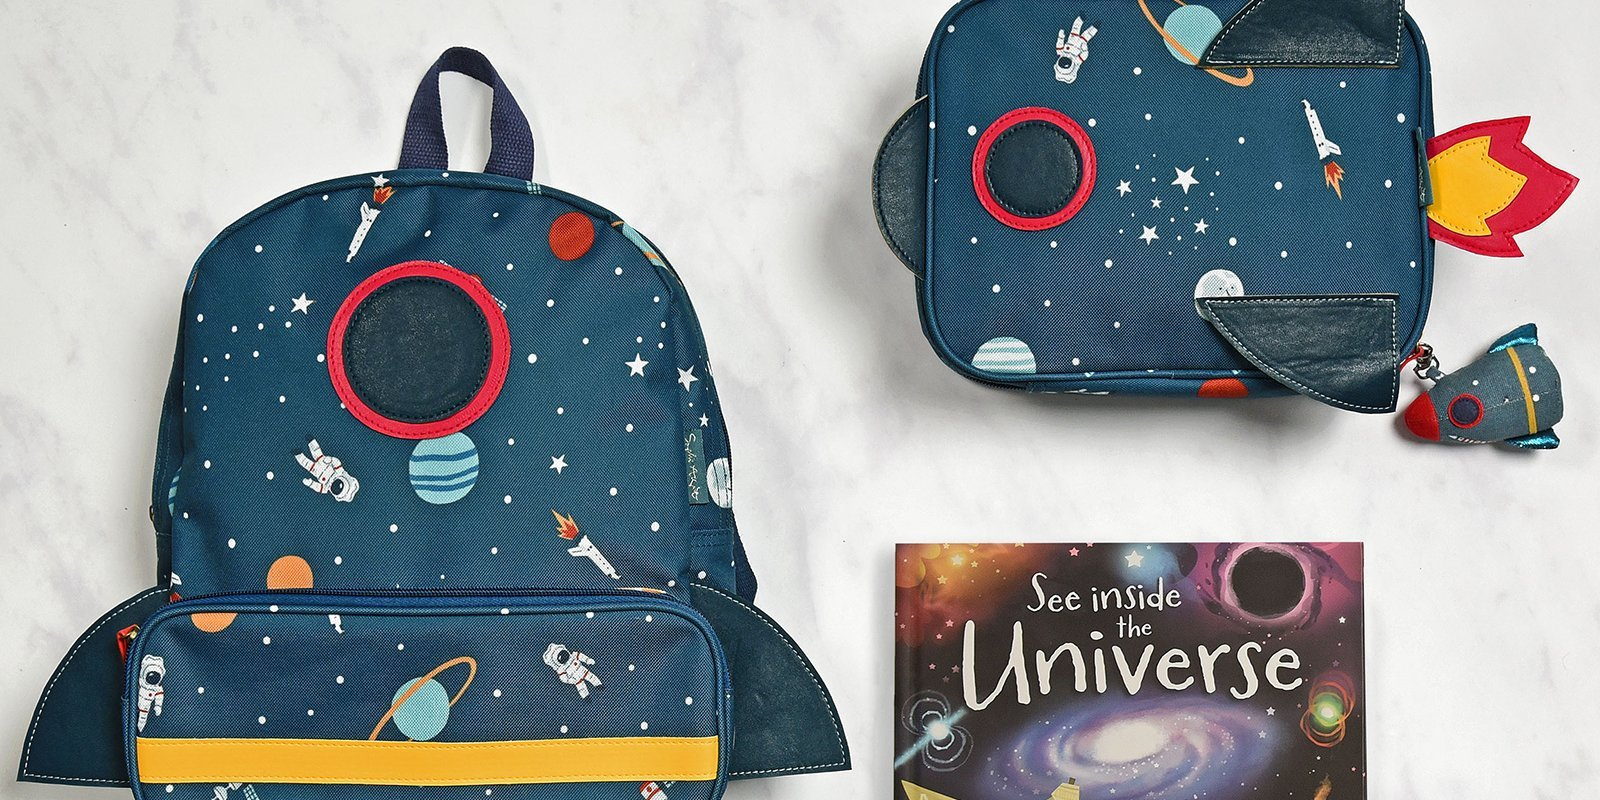 Sophie Allport fun back to school designs